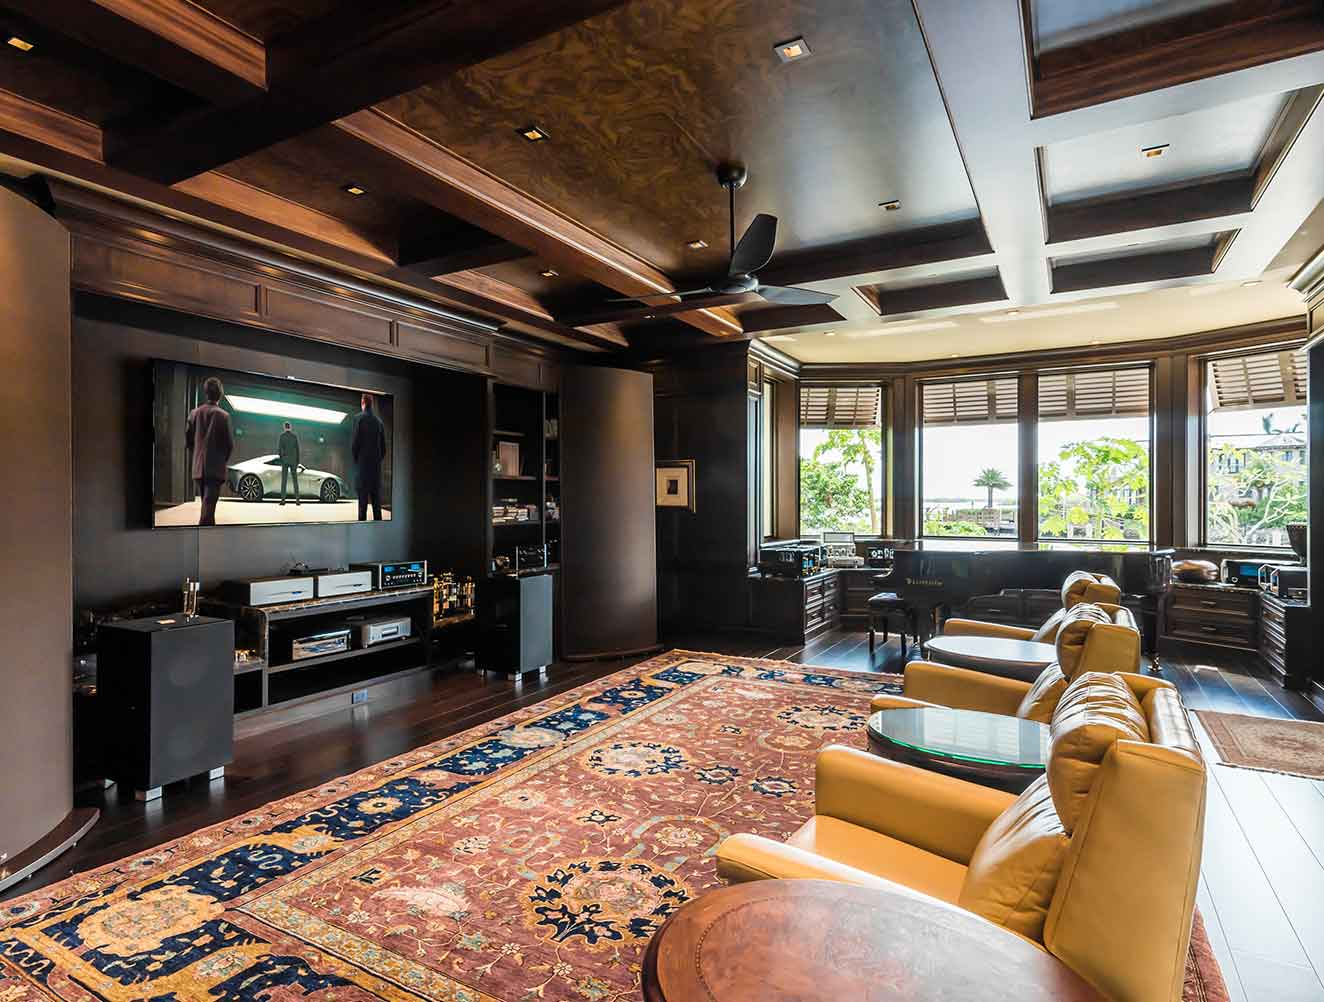 Movie Room at Nelson's Walk Residence in Naples Florida, single family home designed by Kukk Architecture & Design Naples Architecture Firm